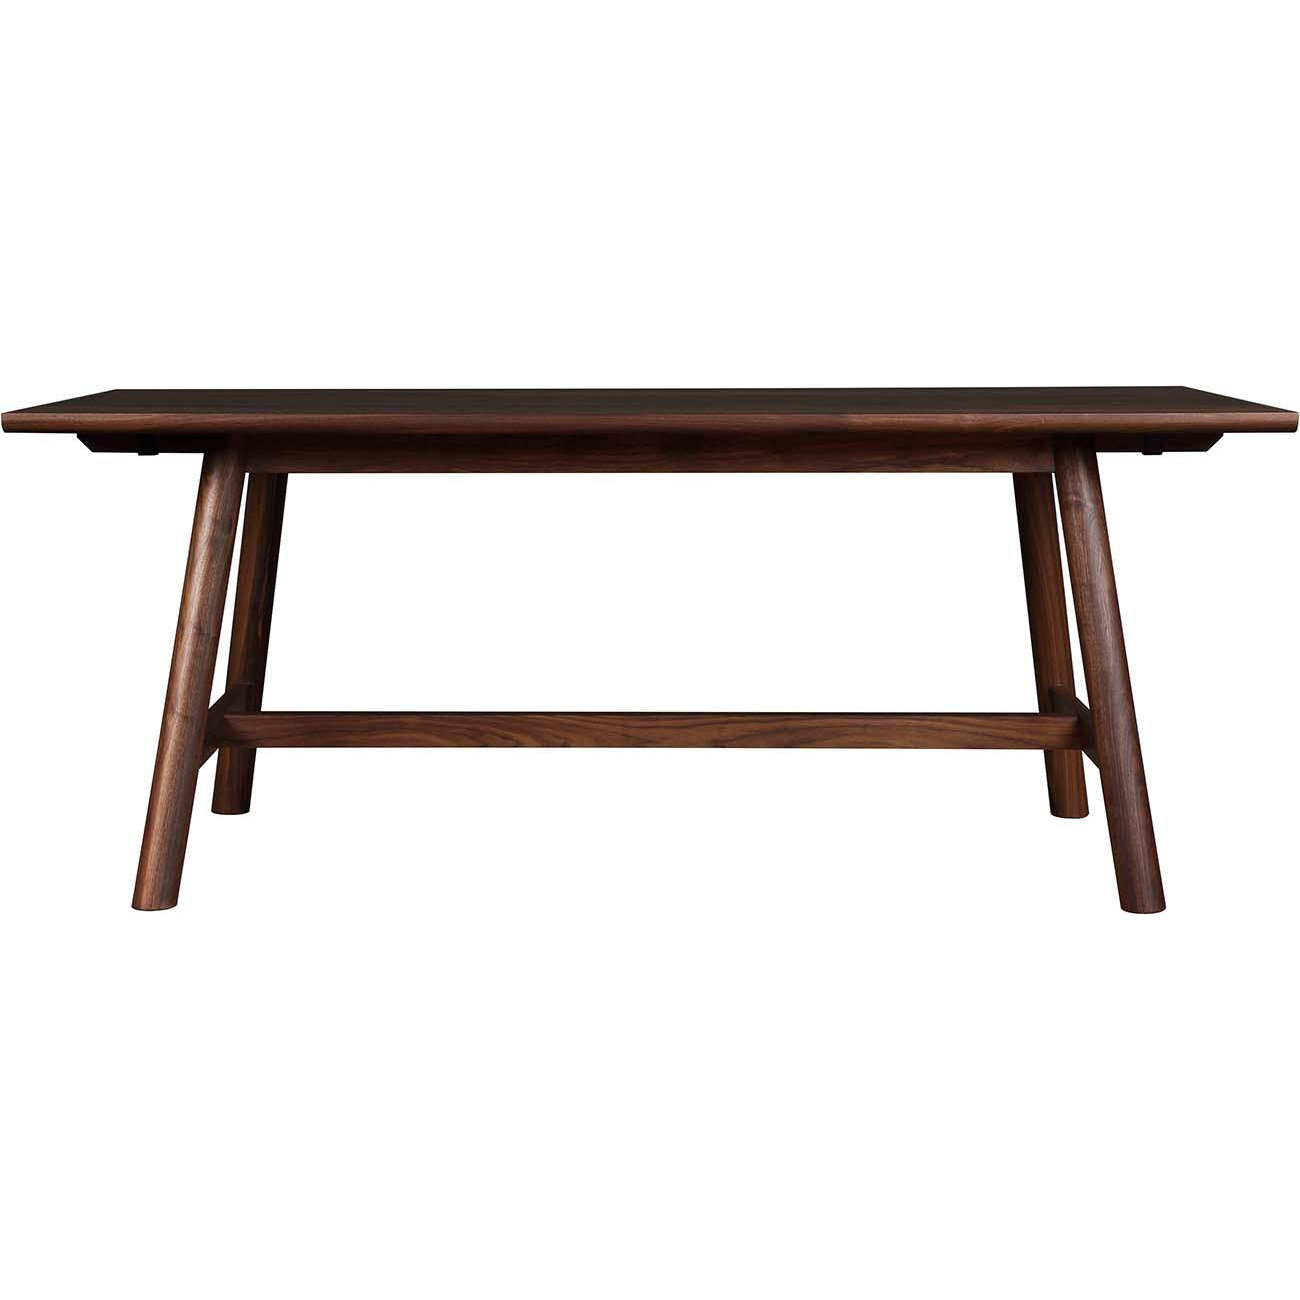 Walnut Grove Dining Table with Leaves